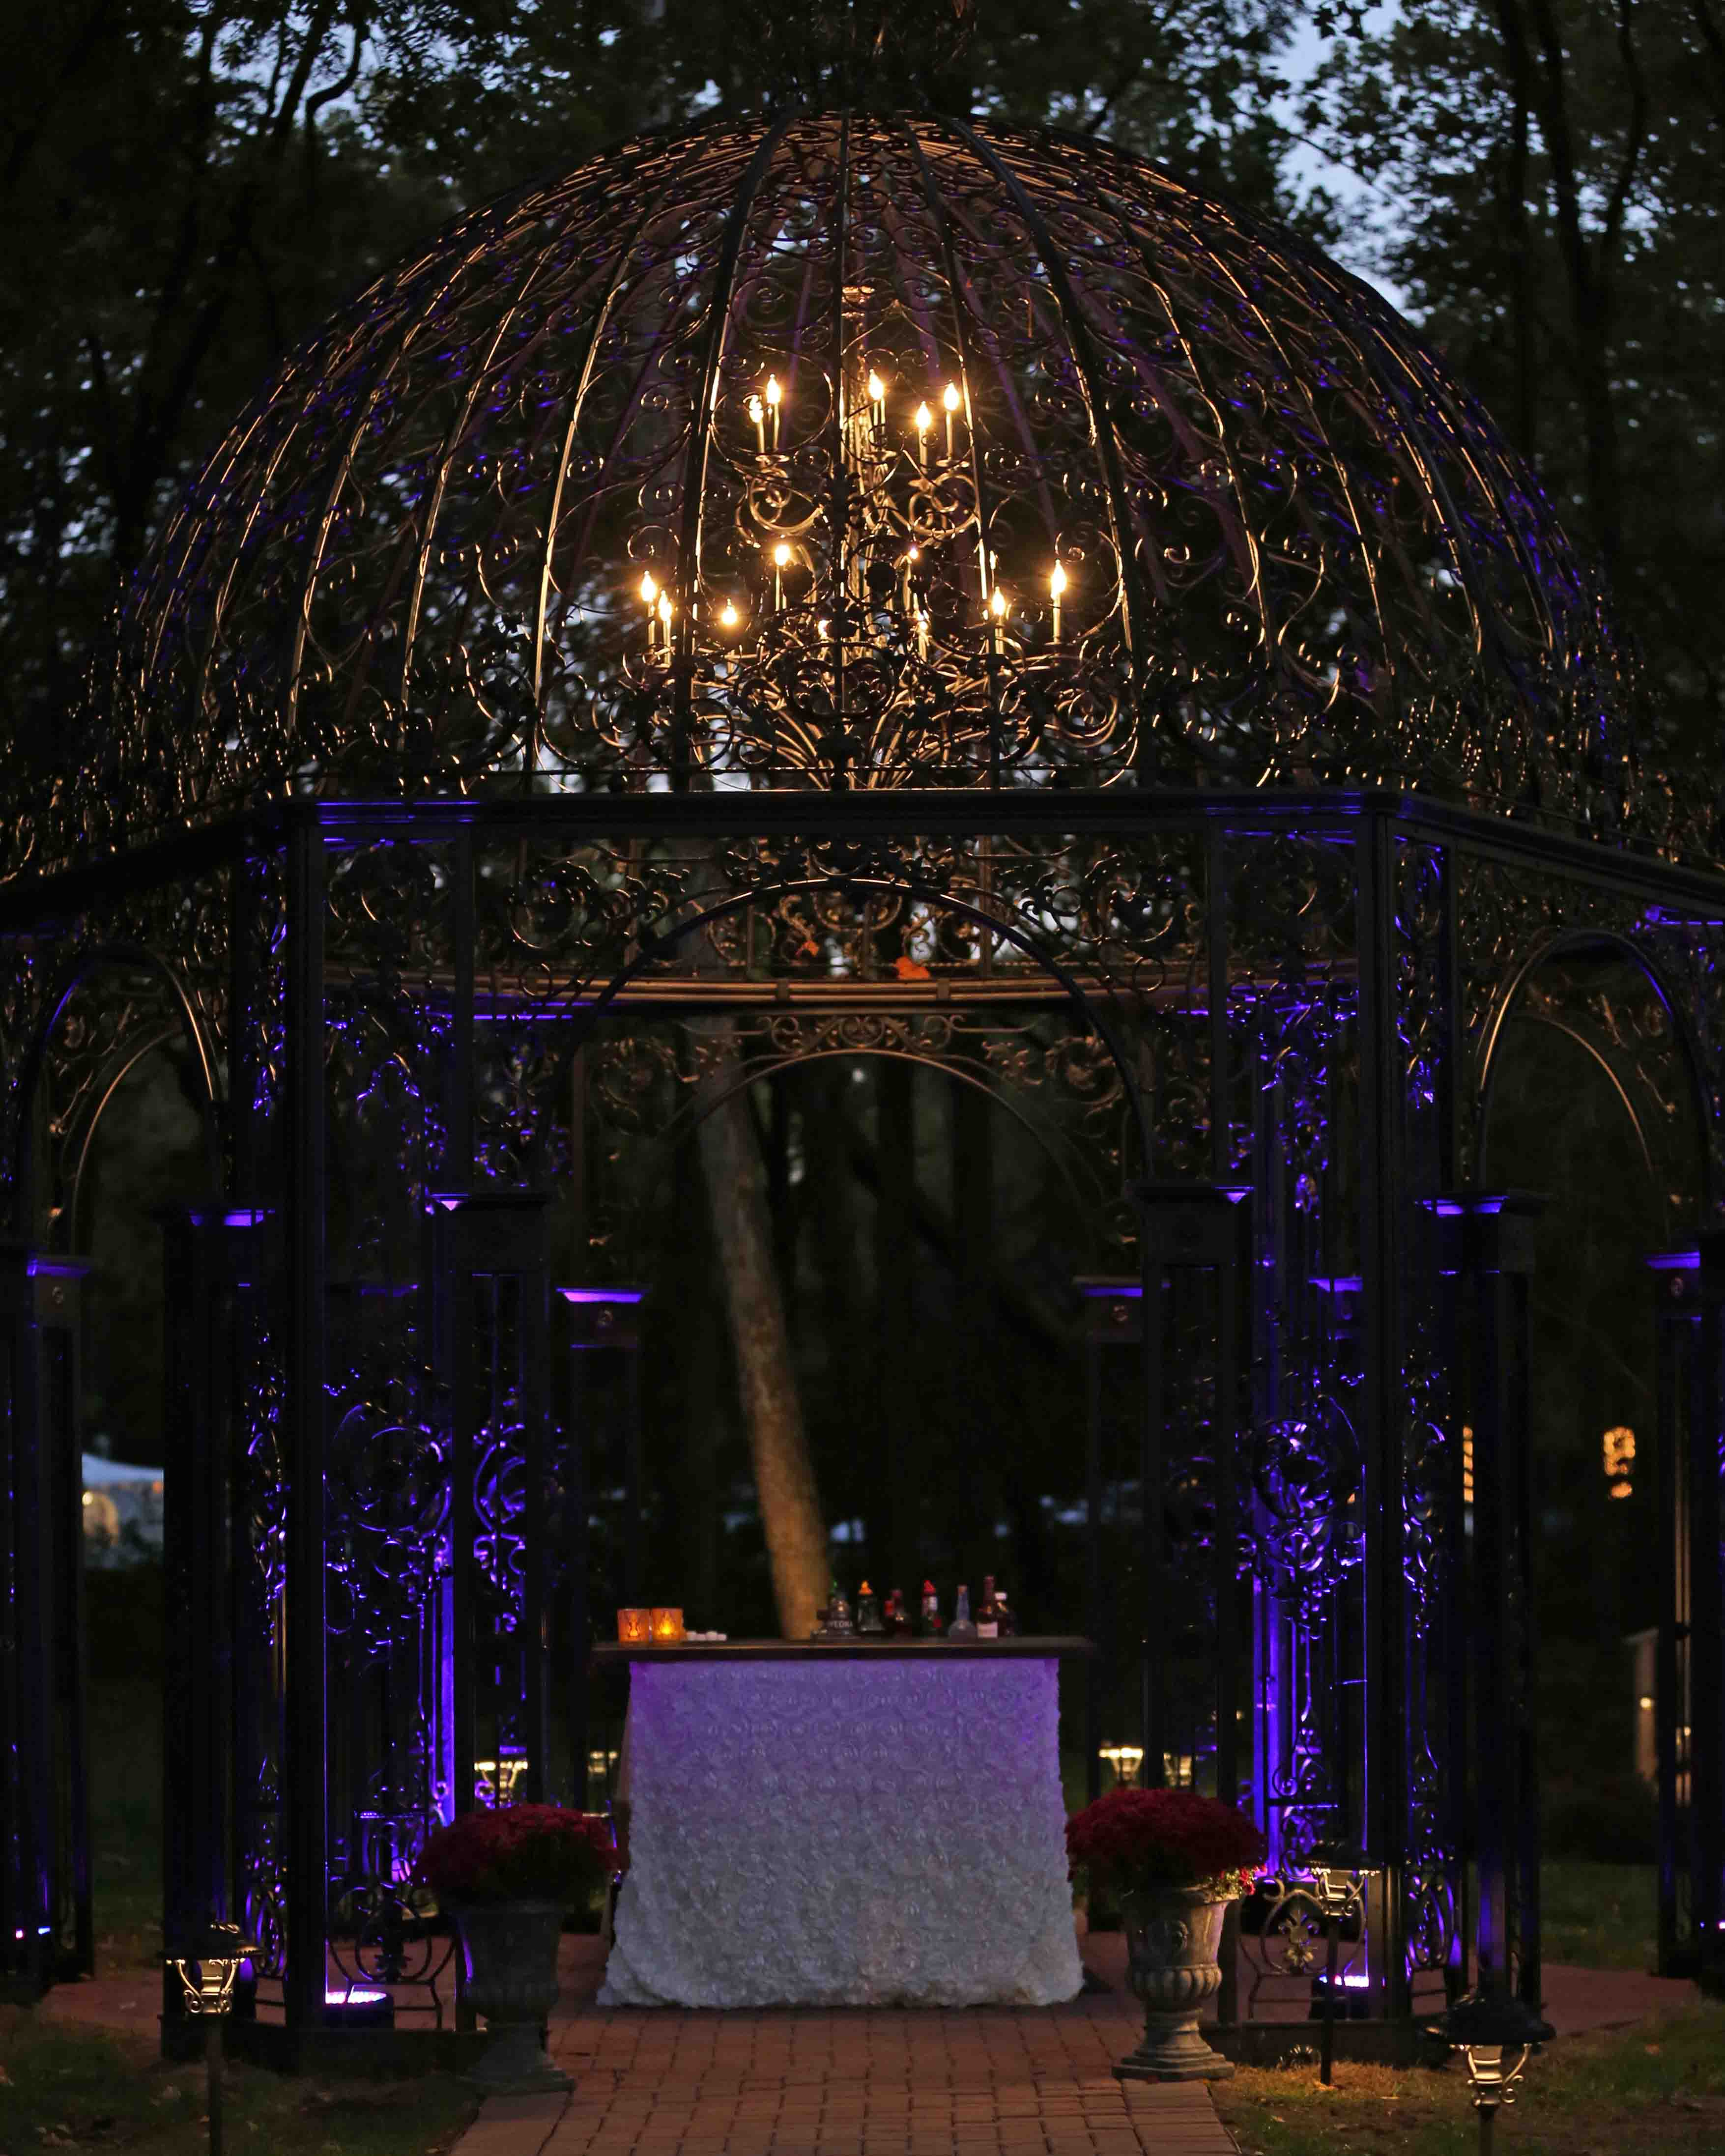 Black Iris Estate gazebo at night